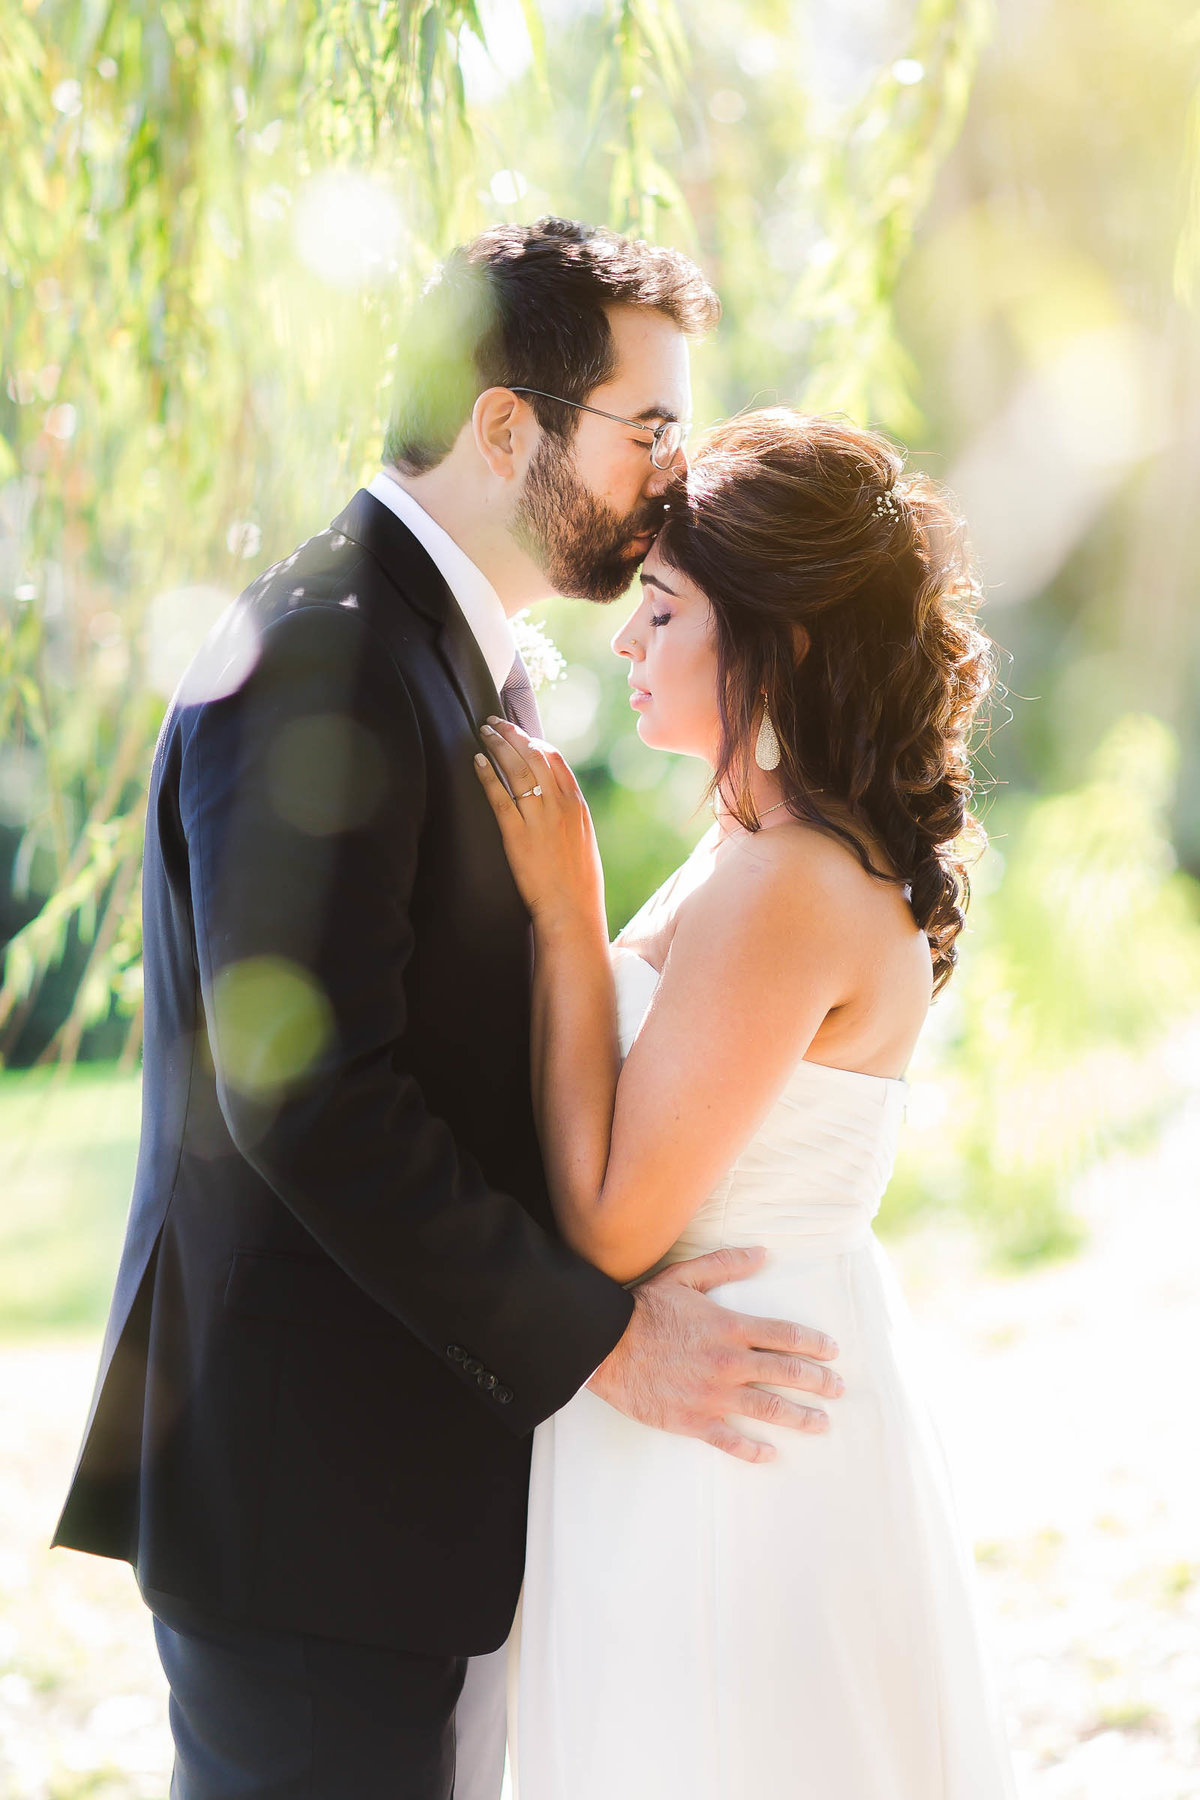 TheWeddingCouple_first2_natalie_kunkel_004